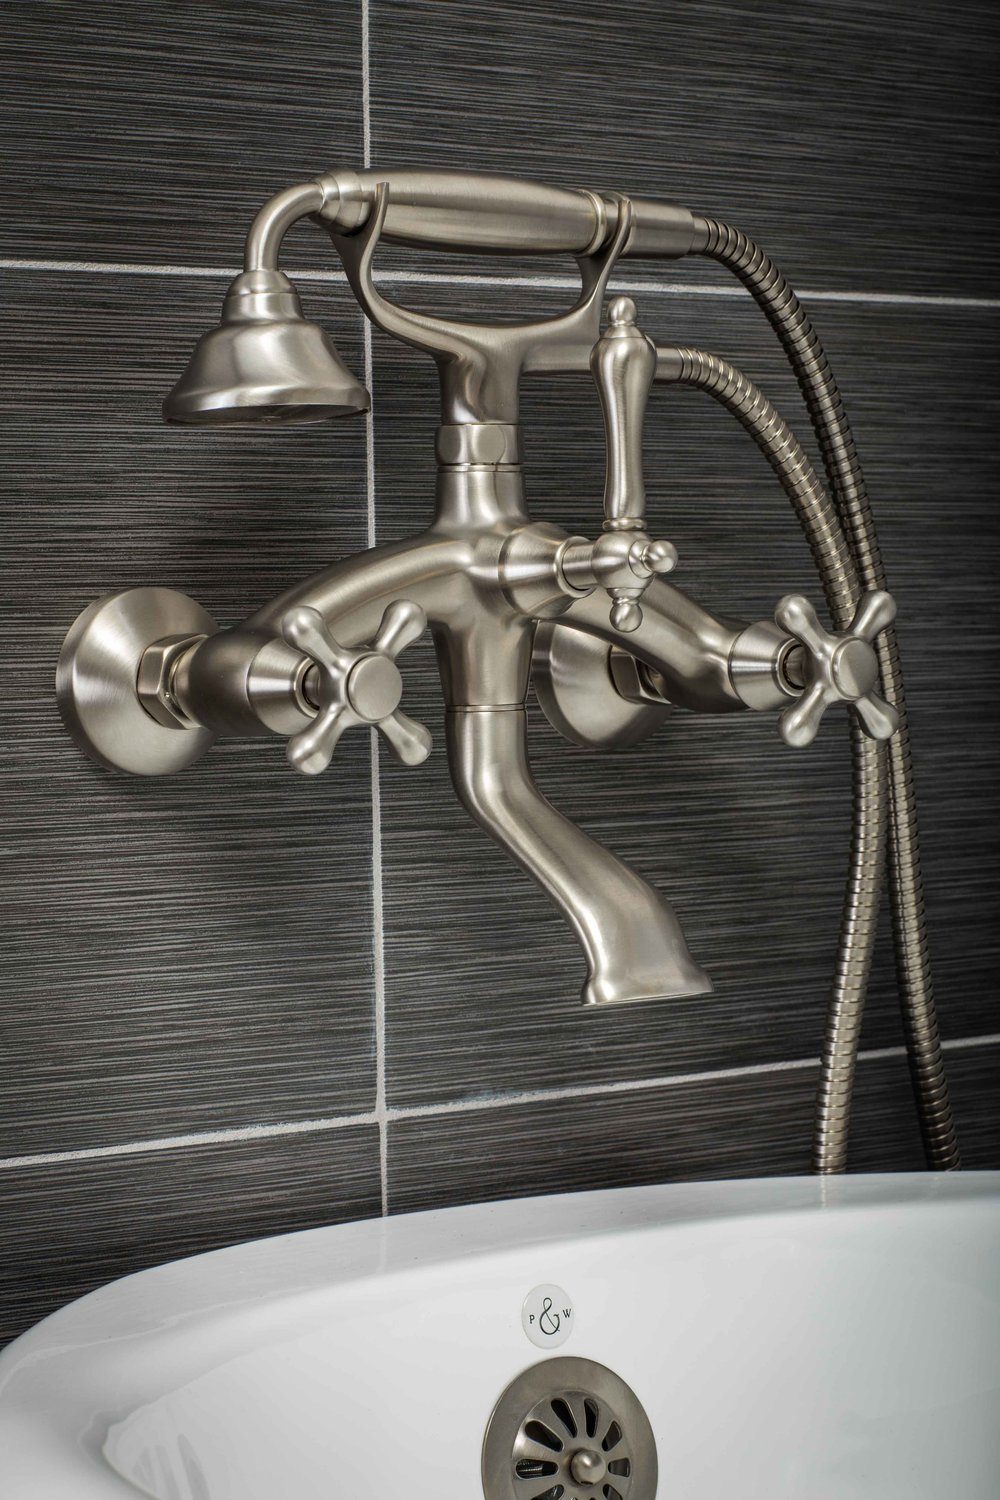 Vintage Wall Mount Tub Filler Faucet in Brushed Nickel with Cross ...